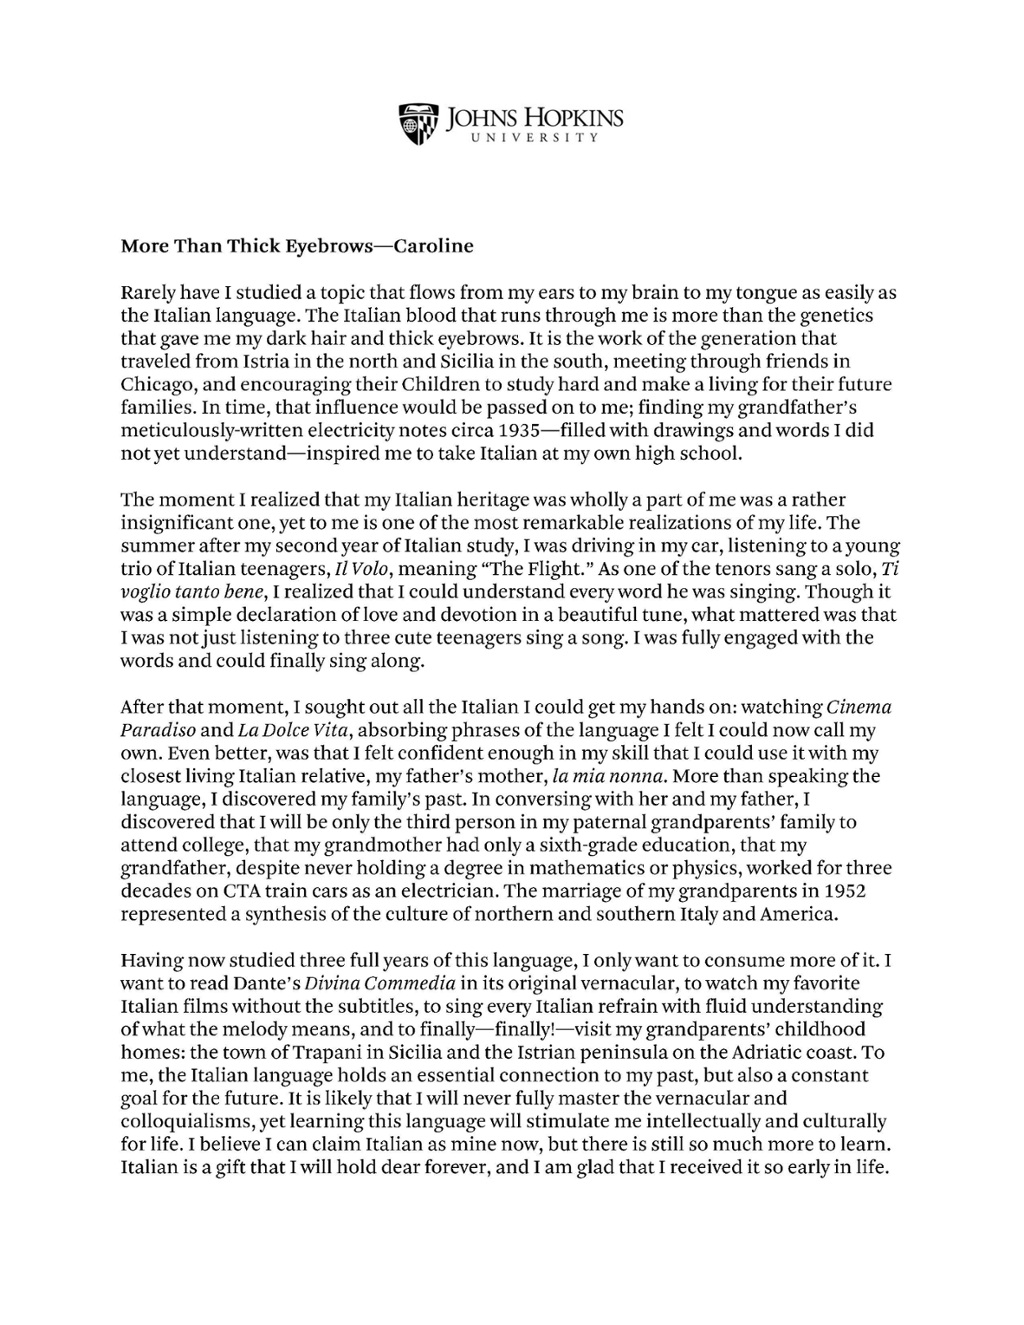 personal statement essays for high school What do you think are the information and skills you need to have in order to write a strong personal statement in high school you learned to write in a certain way and you probably got some good grades for that writing but the expectations for your uc personal statement may be quite different than you are used to.